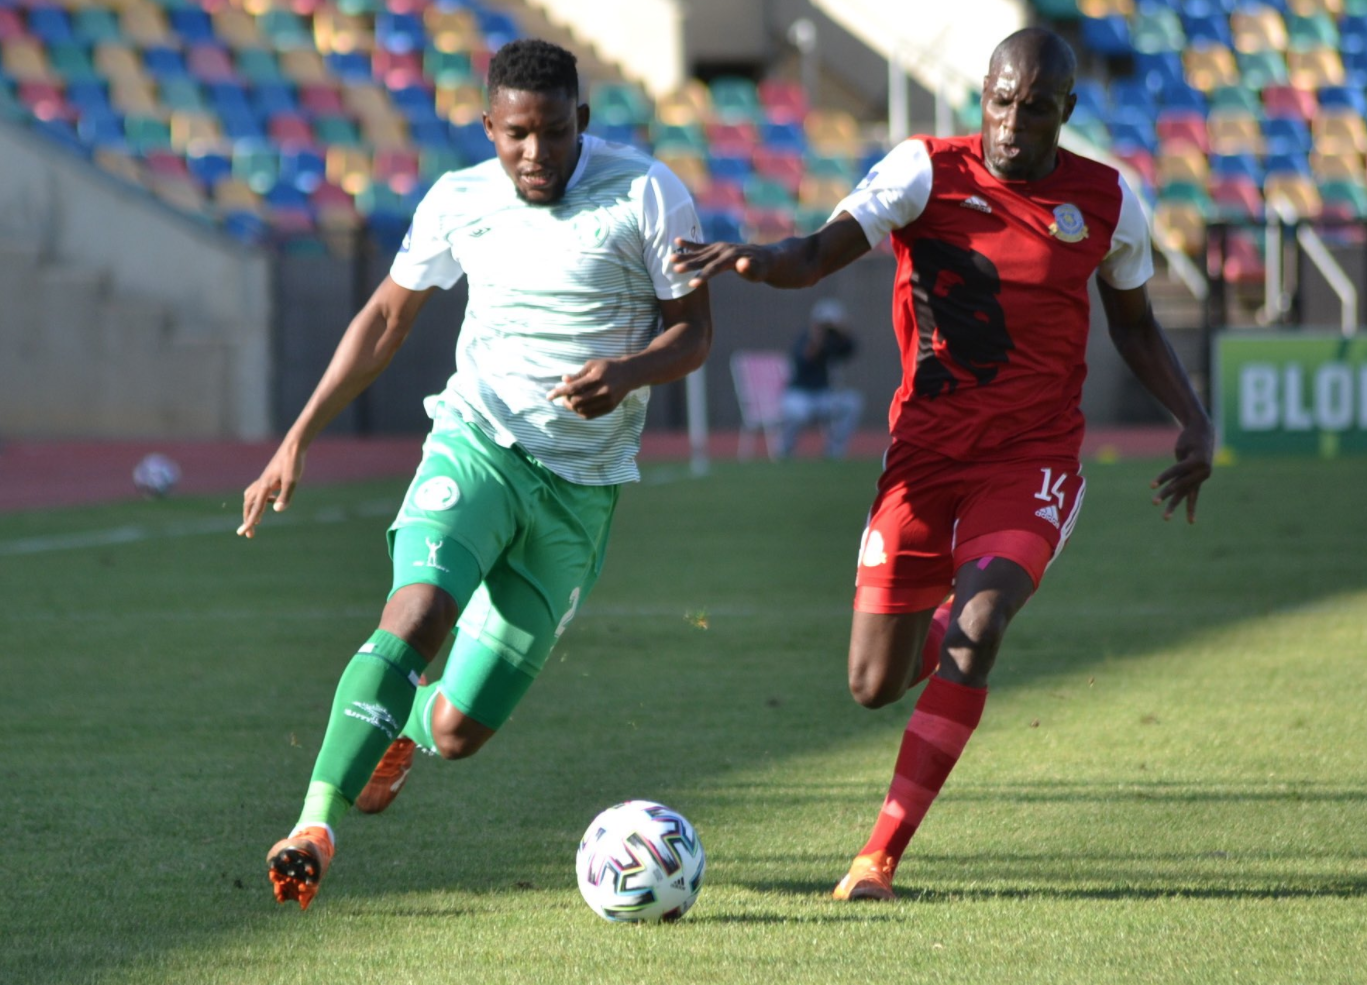 BLOEM CELTIC EDGE TTM TO BREAK WINLESS STREAK